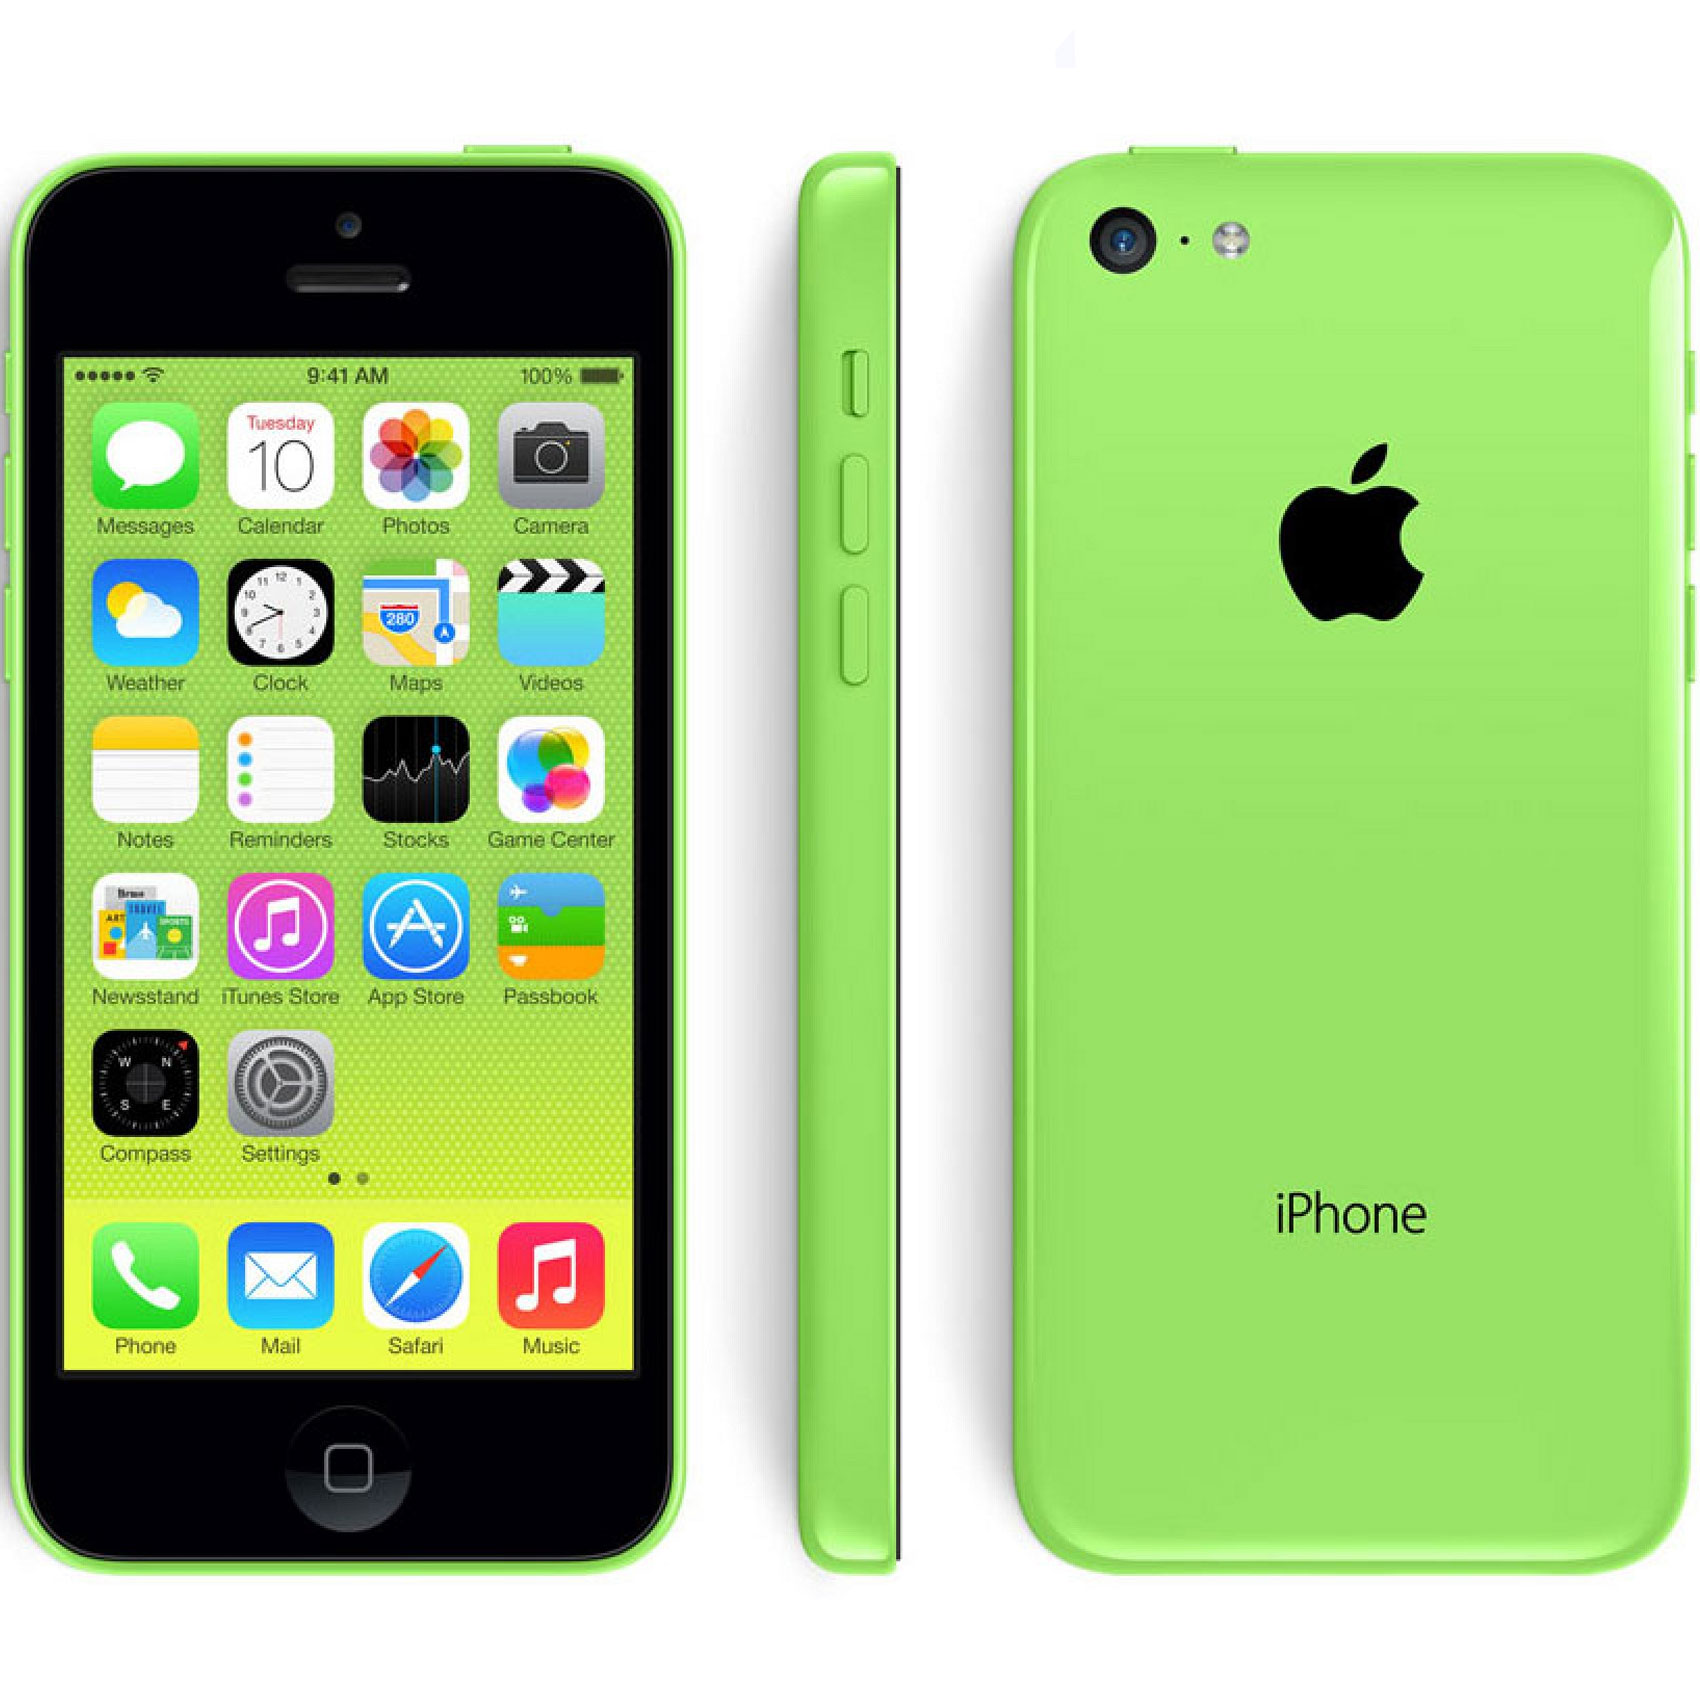 Venta De Moviles Libres Iphone Moviles Libres Apple Iphone 5c 8gb Verde